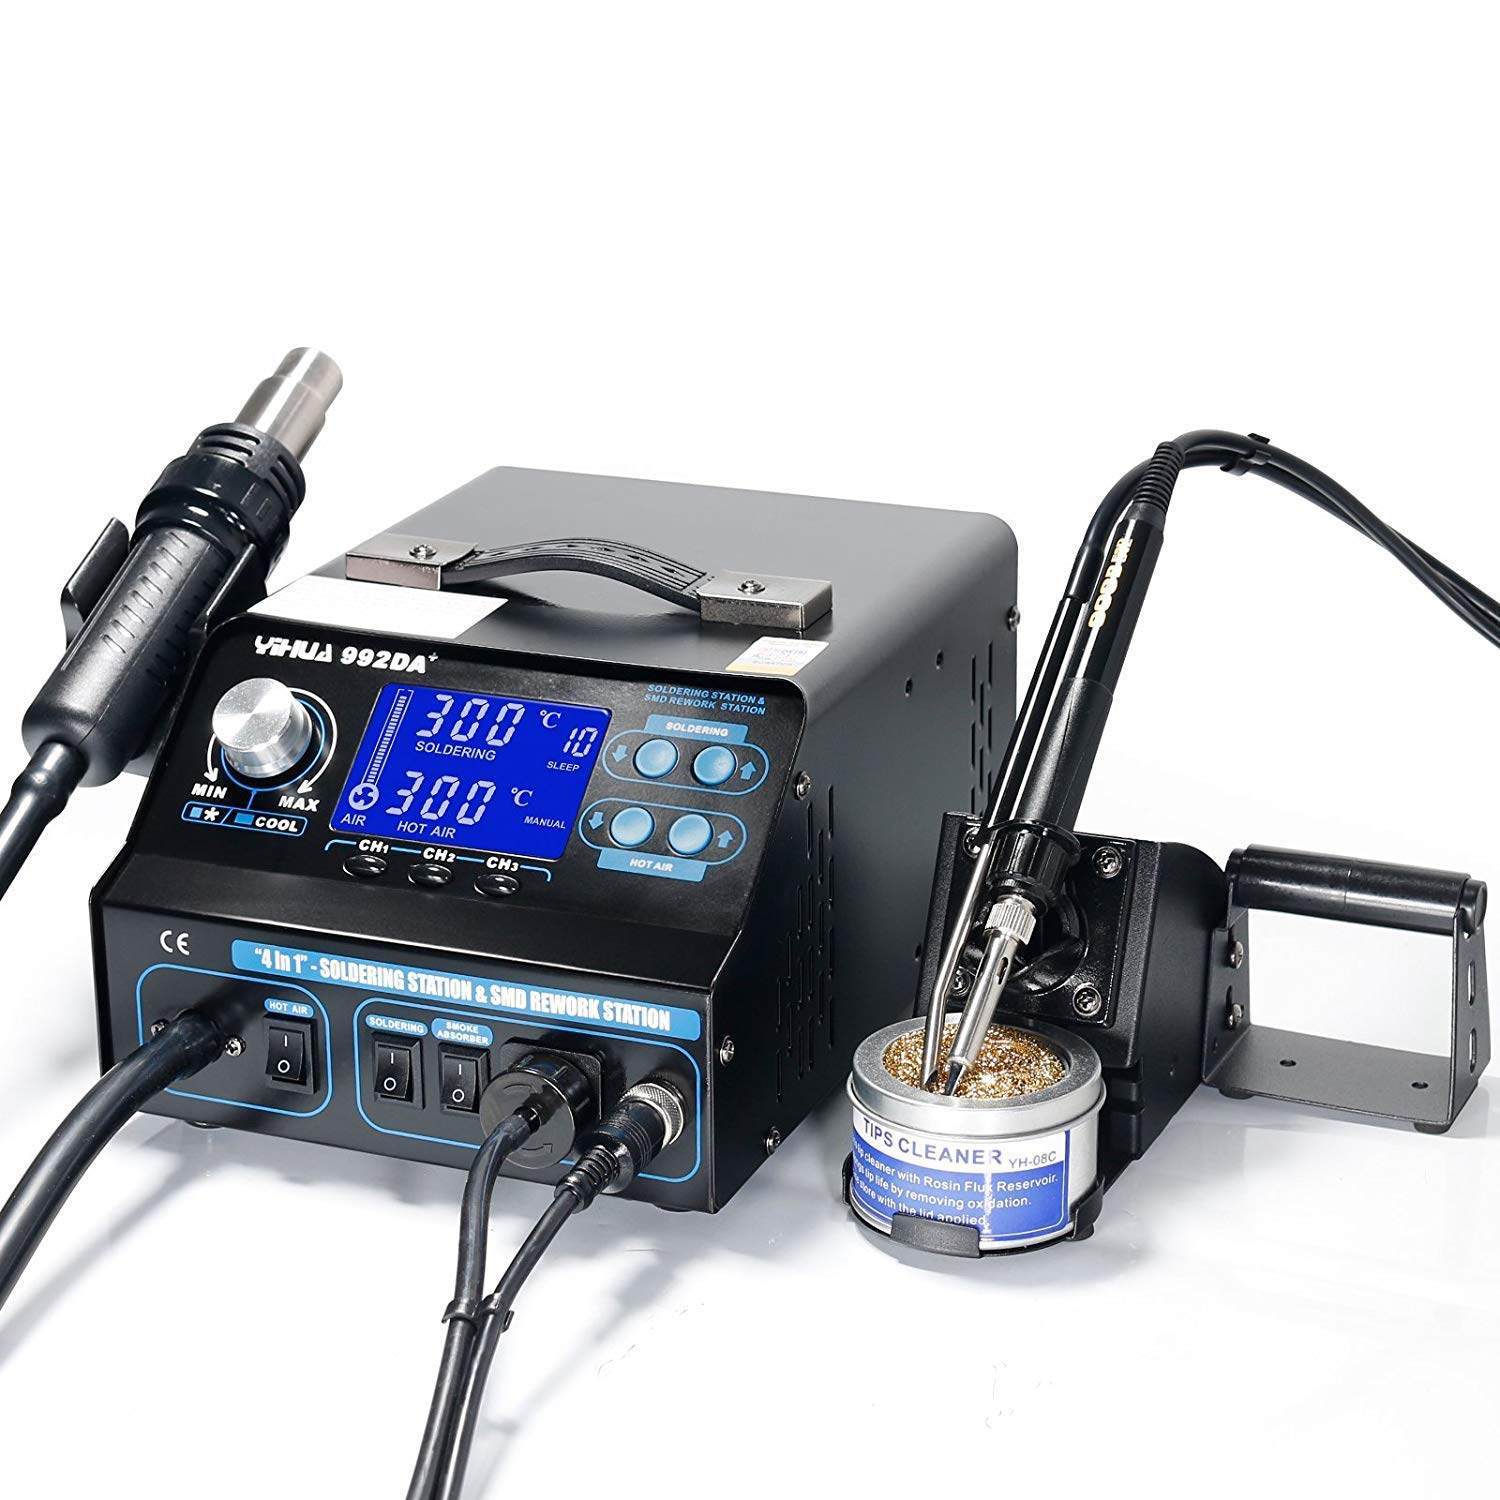 4 IN 1 HOT AIR REWORK SOLDERING IRON STATION FUME EXTRACTOR UK YIHUA 992DA